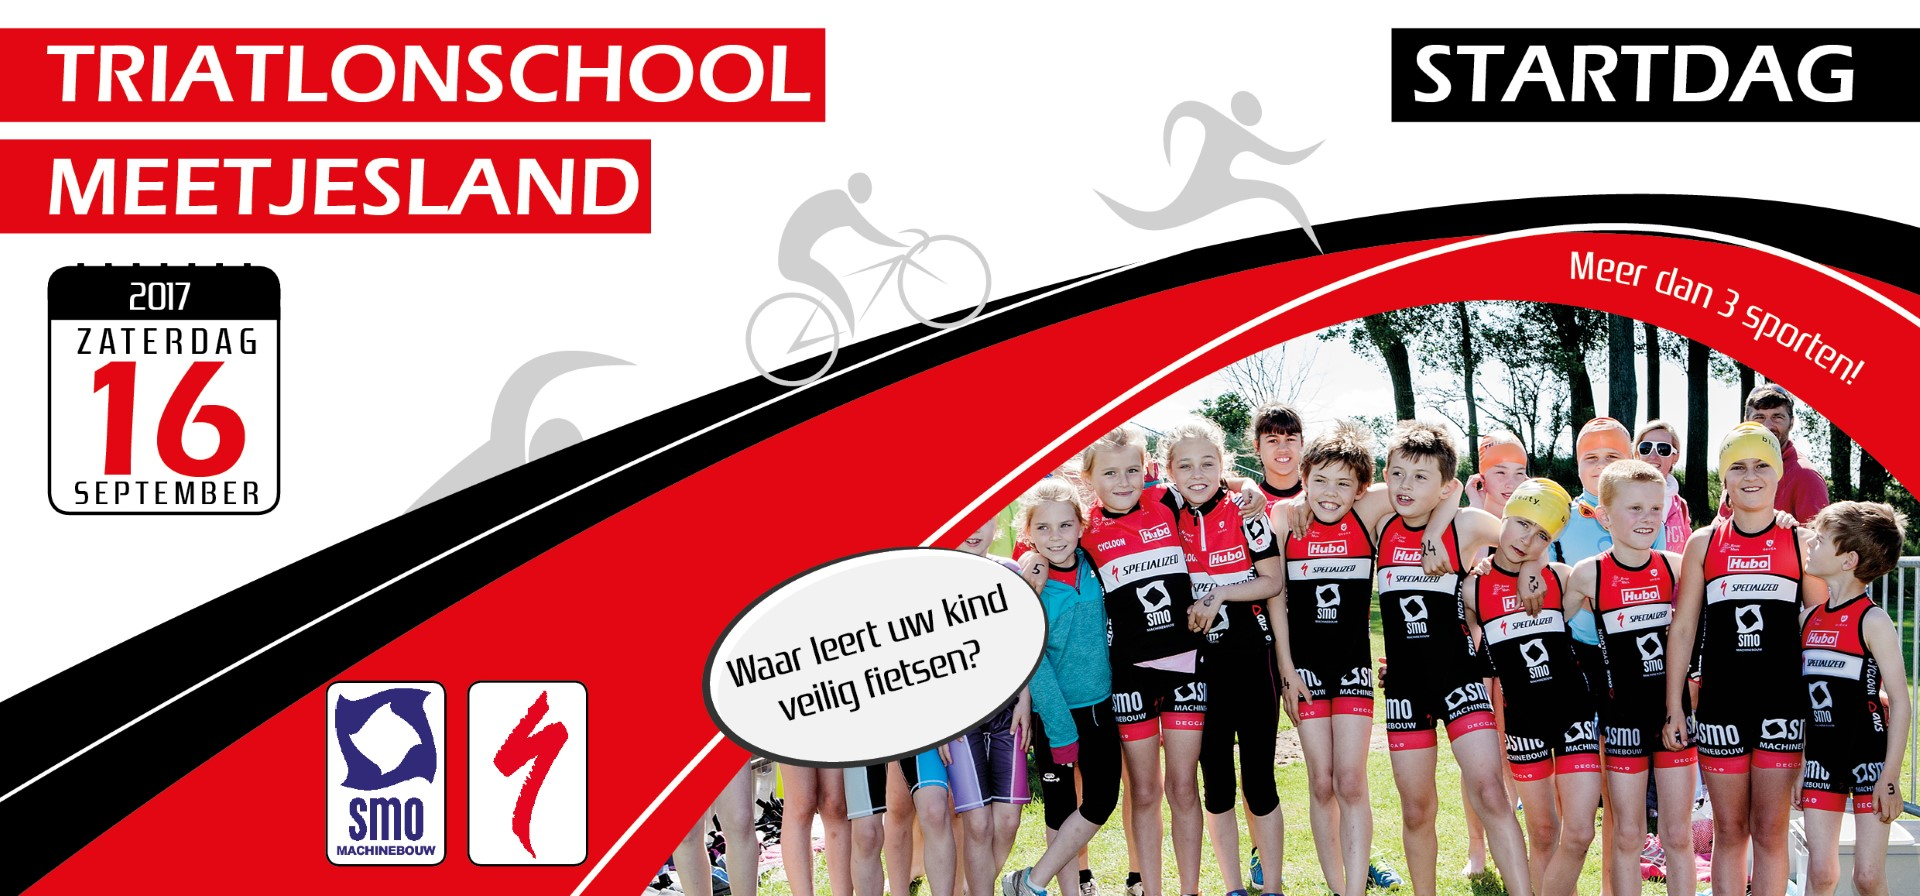 Triatlonschool Meetjesland 2017